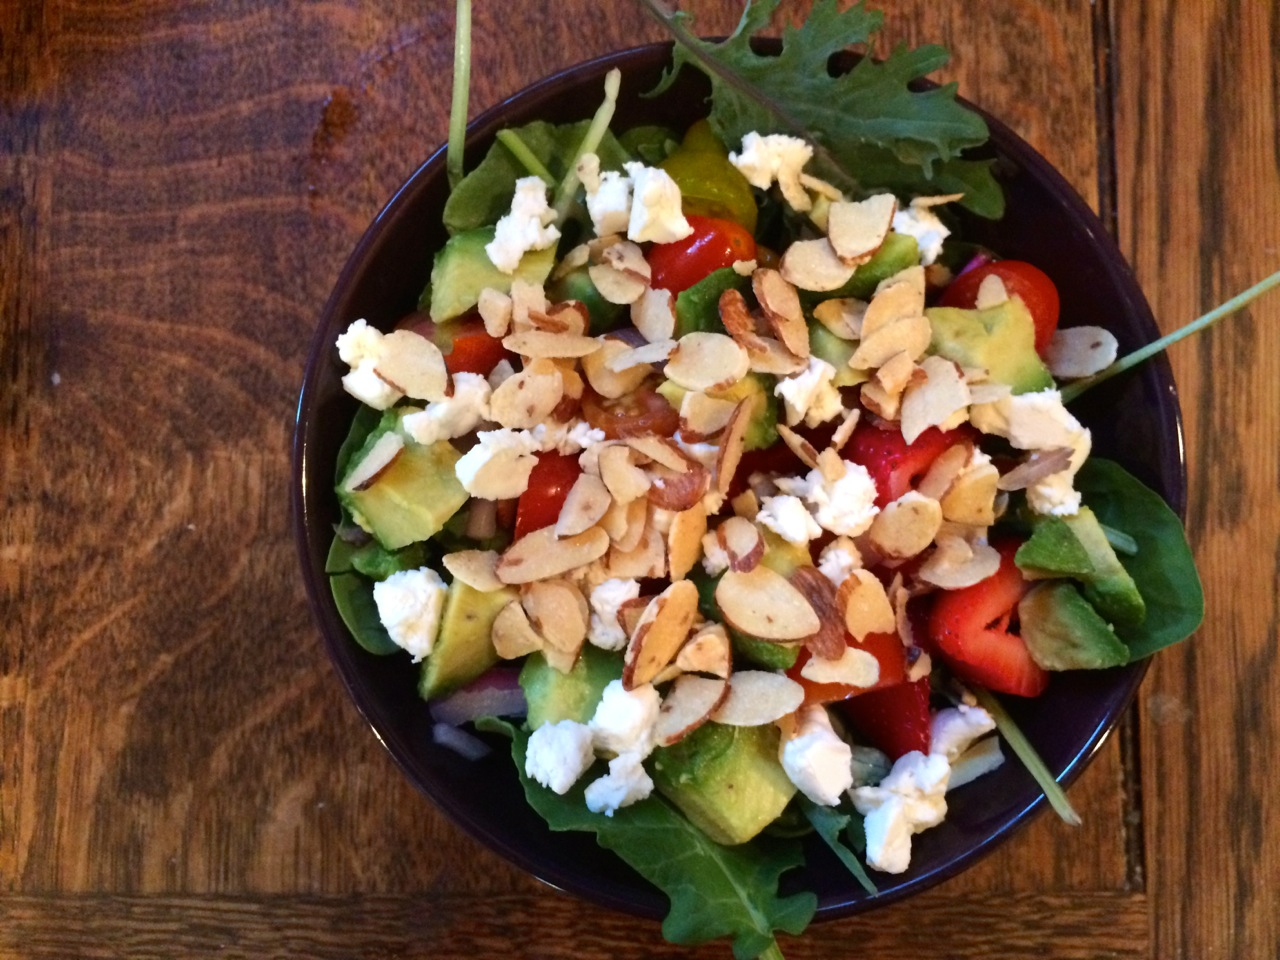 Honeyed Strawberry Avocado Salad with Almonds